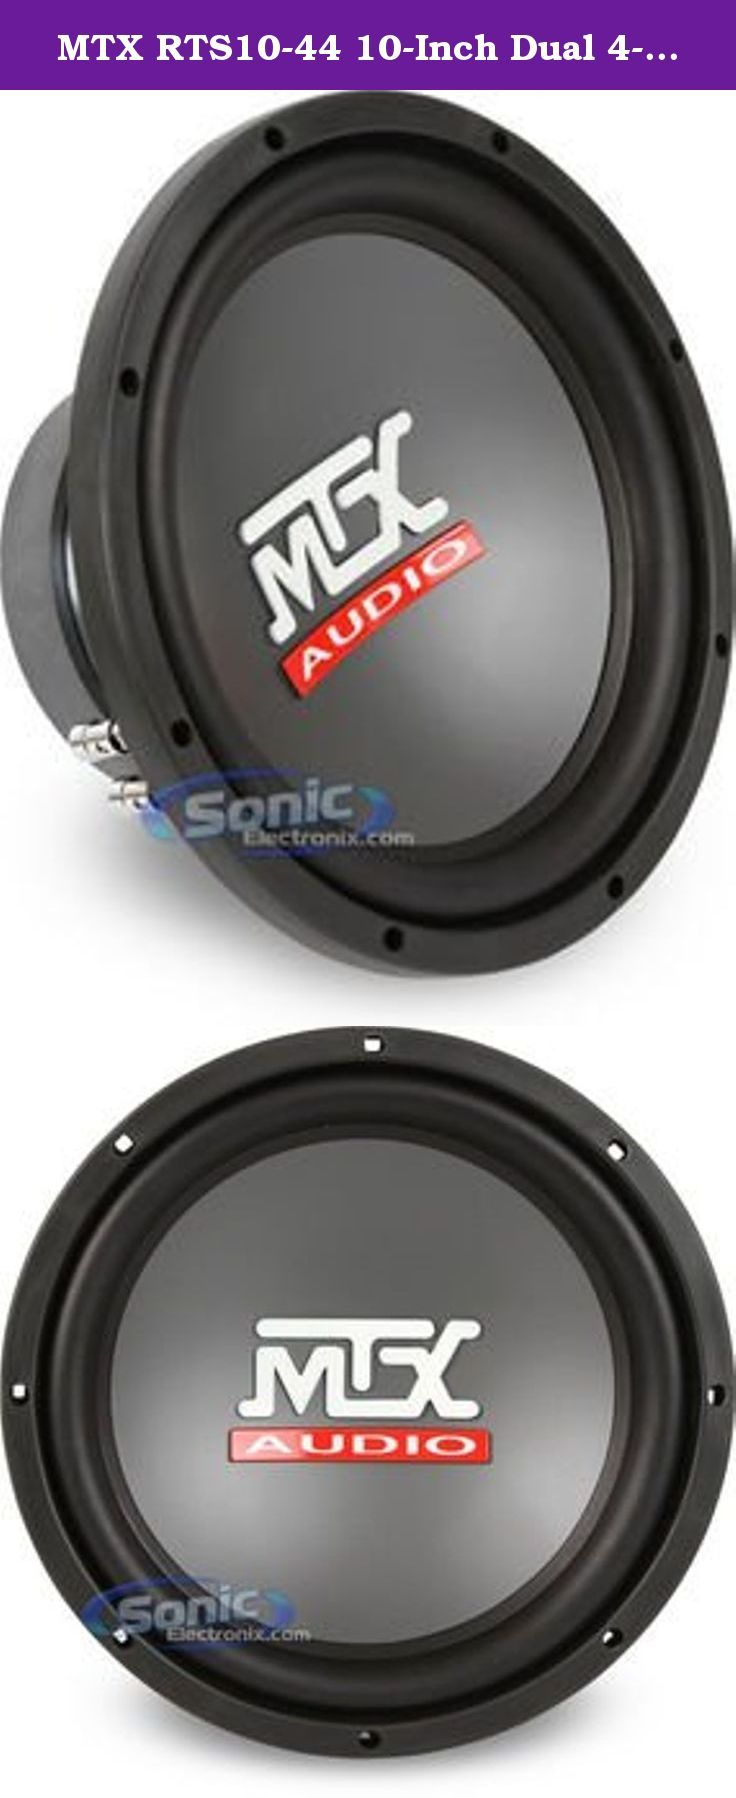 Mtx rts10 44 10 inch dual 4 ohm round subwoofer road thunder mtx rts10 44 10 inch dual 4 ohm round subwoofer road thunder subwoofers are the continued evolution of high performance subwoofers from mtx publicscrutiny Images